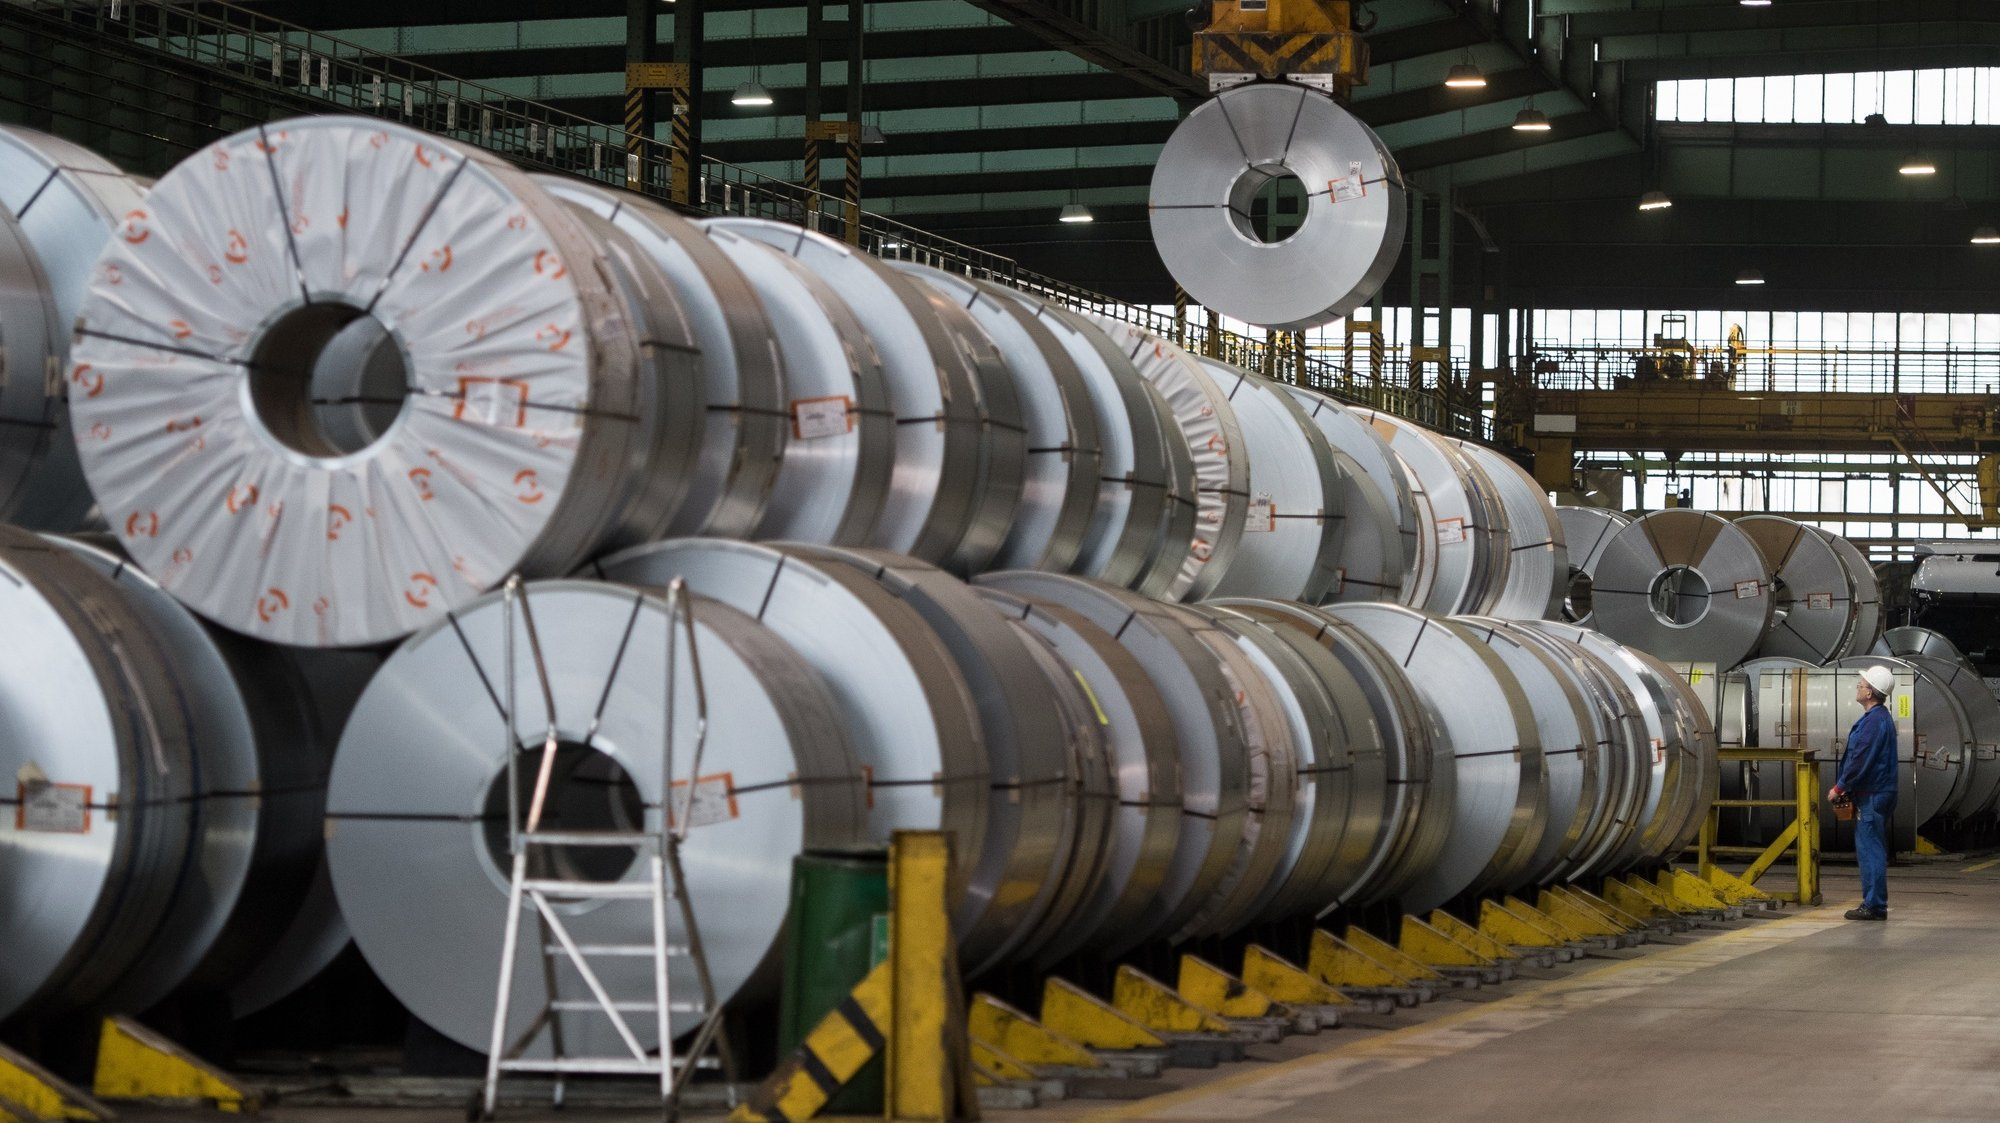 epa07478087 (FILE) - A worker stores steel collies from the Salzgitter AG in Salzgitter, Germany, 22 March 2018 (reissued 01 April 2019). Reports on 01 April 2019 state the IHS Markit institute reporting German purchasing manager index has fallen 3,5 points to 44,1 points, an 80-month low and its lowest figure since 2012. The incoming orders and orders for export have both suffered from a decline not seen since the global financial crisis, the institute said. For the Eurozone, IHS Markit's final Eurozone manufacturing PMI stood at 47,5 points in March, down from February's final figure 49,3 points, marking its biggest monthly decline in new orders since the end of 2012.  EPA/DAVID HECKER